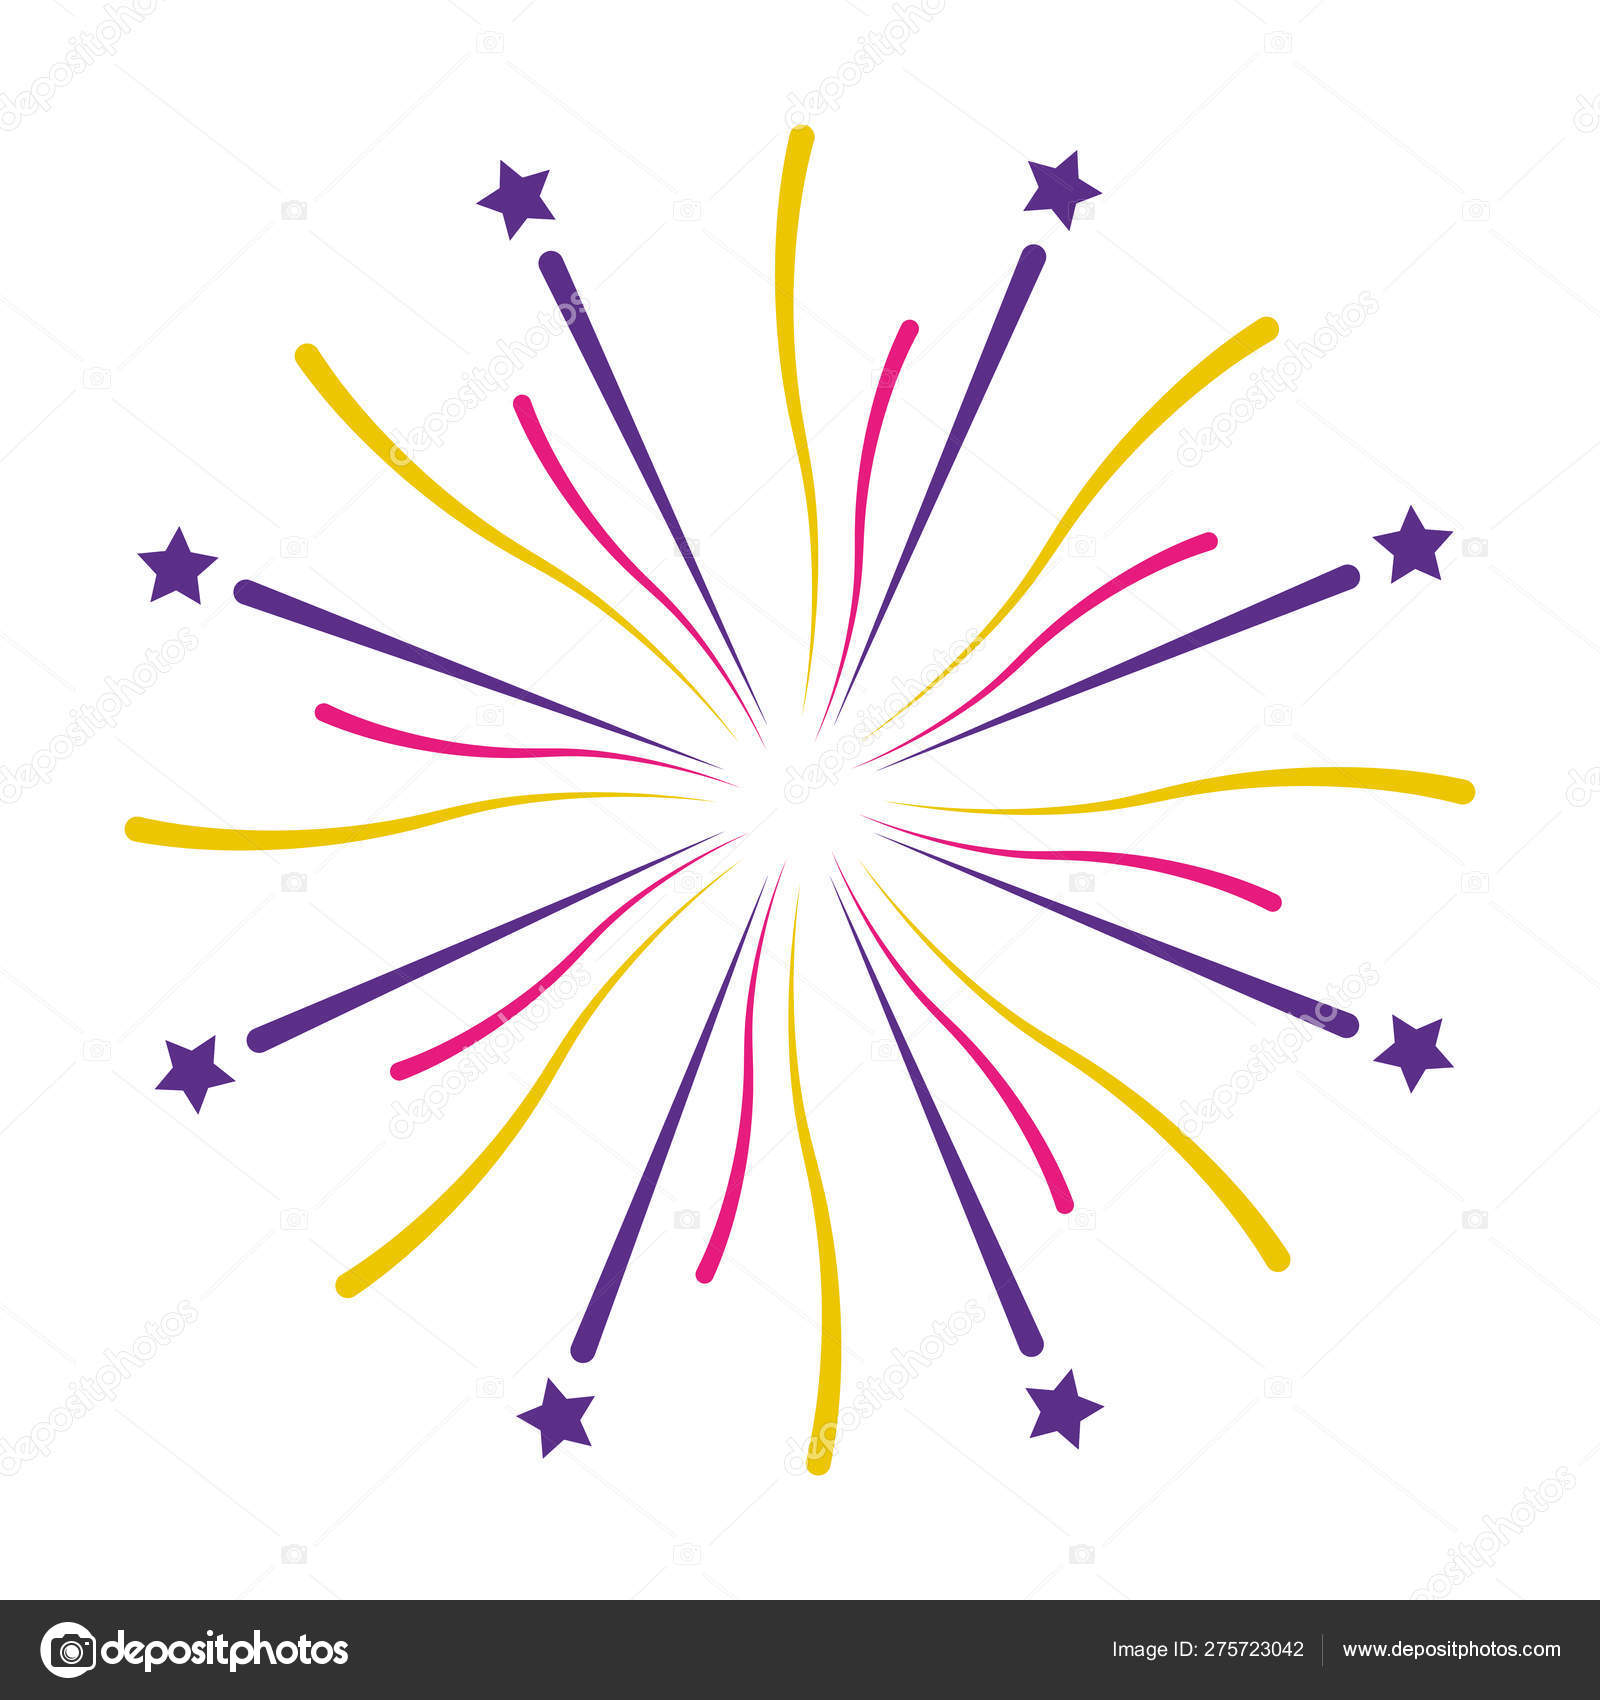 Hand painted cartoon fireworks png image_picture free download  401067750_lovepik.com